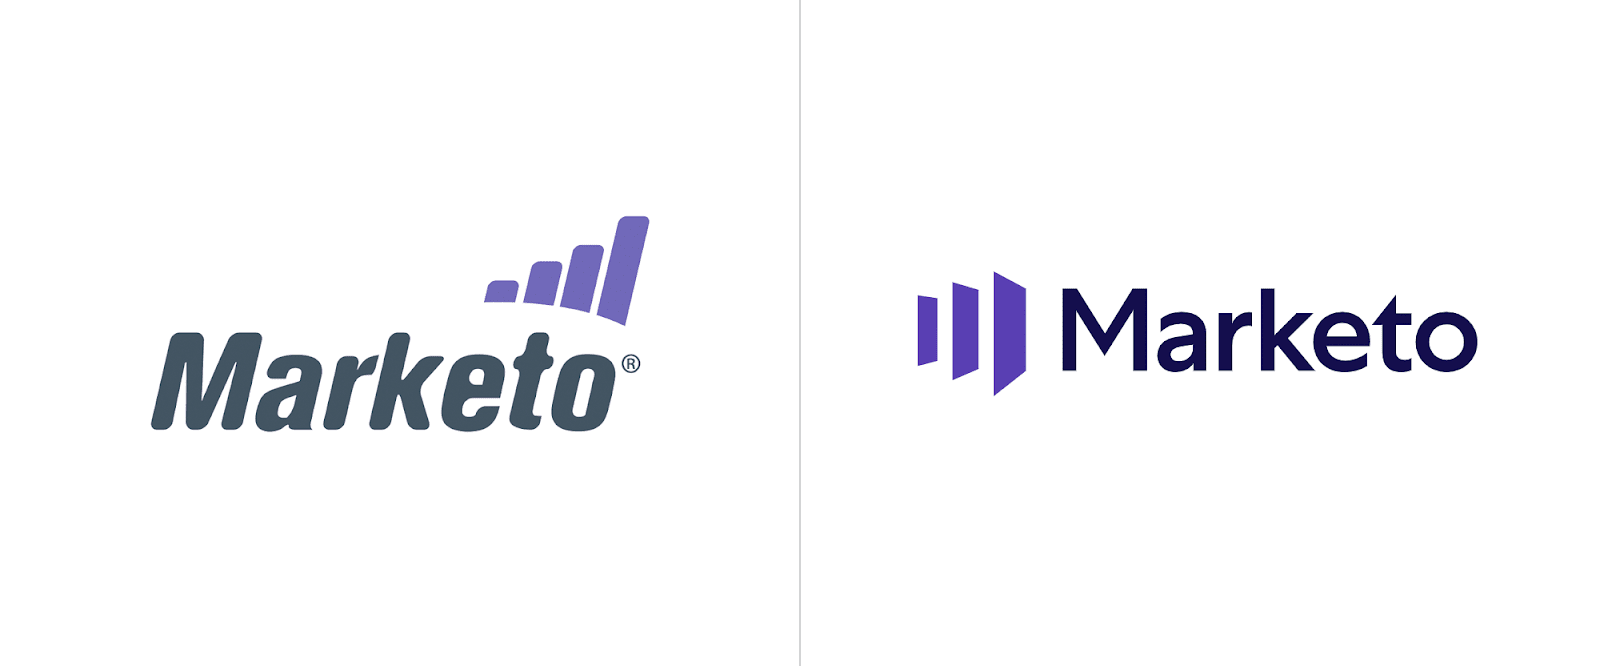 Marketo transitions from playful to Helvetica serious